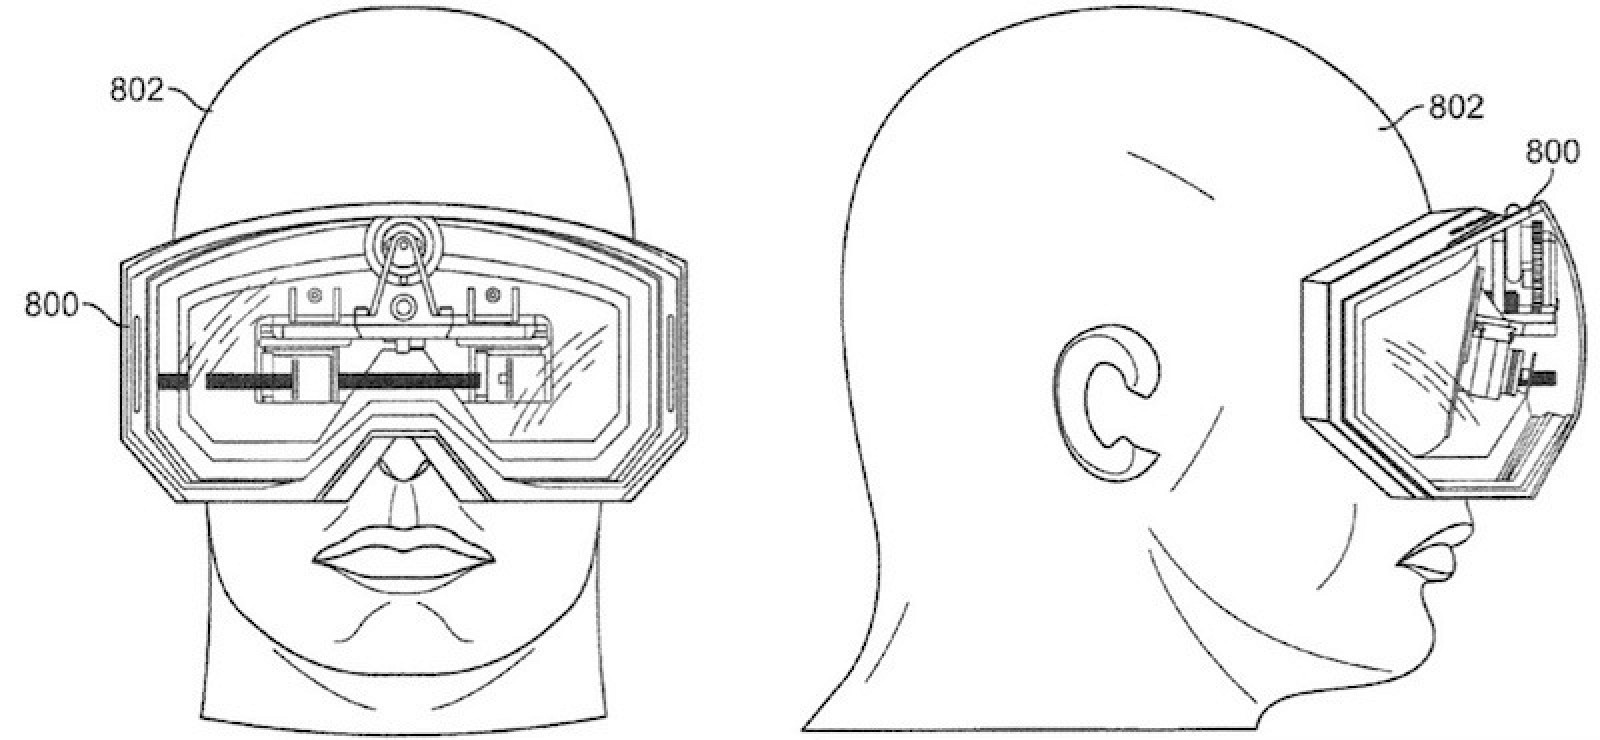 Apples Work On Video Goggles Highlighted In Newly Granted Patent on ios 9 iphone 7